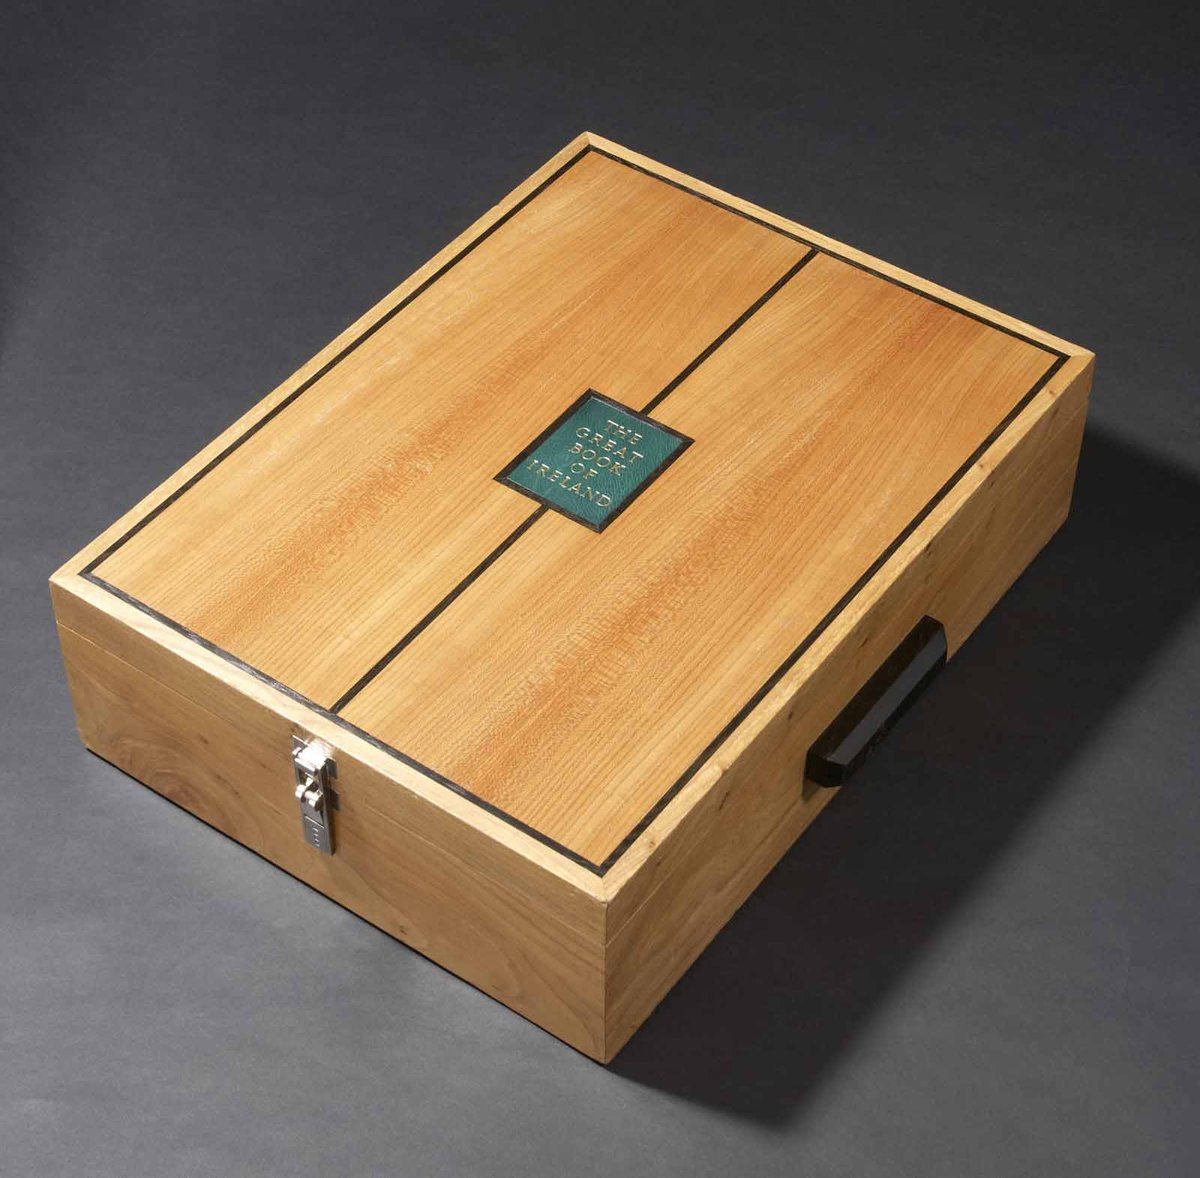 A pressure box of elm from the grounds of Yeats' Thoor Ballylee with bog oak detail was made by Eric Pearse to host The Great Book of Ireland, made to a specification by Roger Powell.   Watch the @RTEOne documentary on The Great Book of Ireland on Thursday August 20 https://t.co/r3srlwxSVU